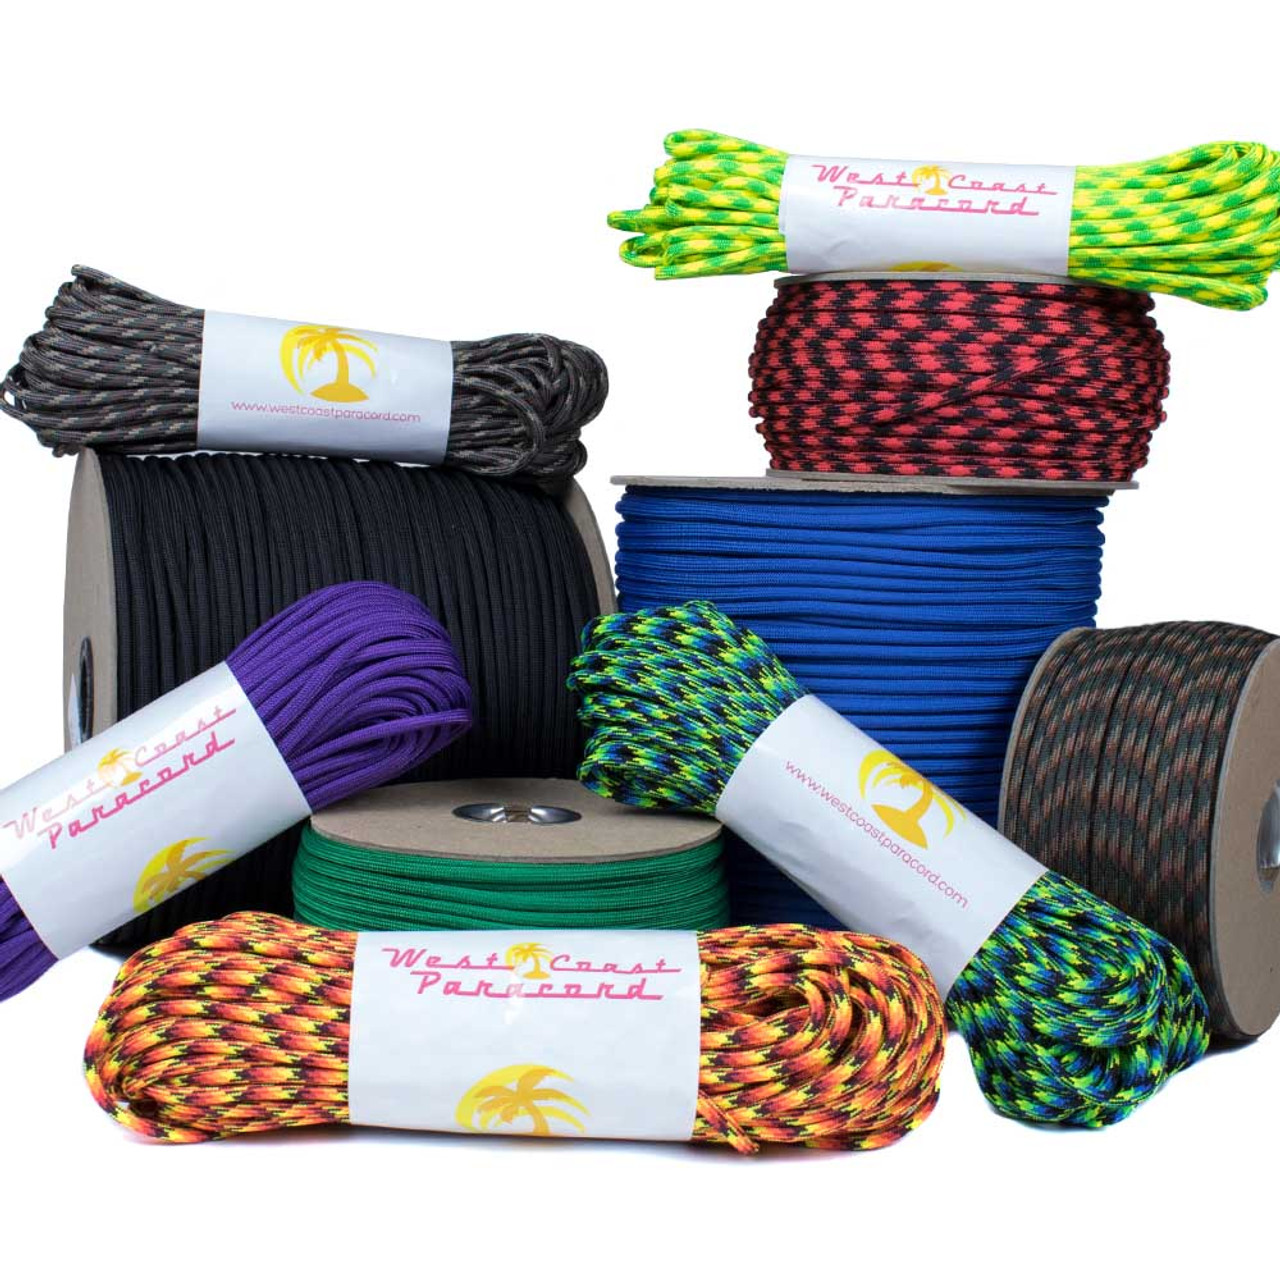 West Coast Paracord 550 Survival Paracord Rope